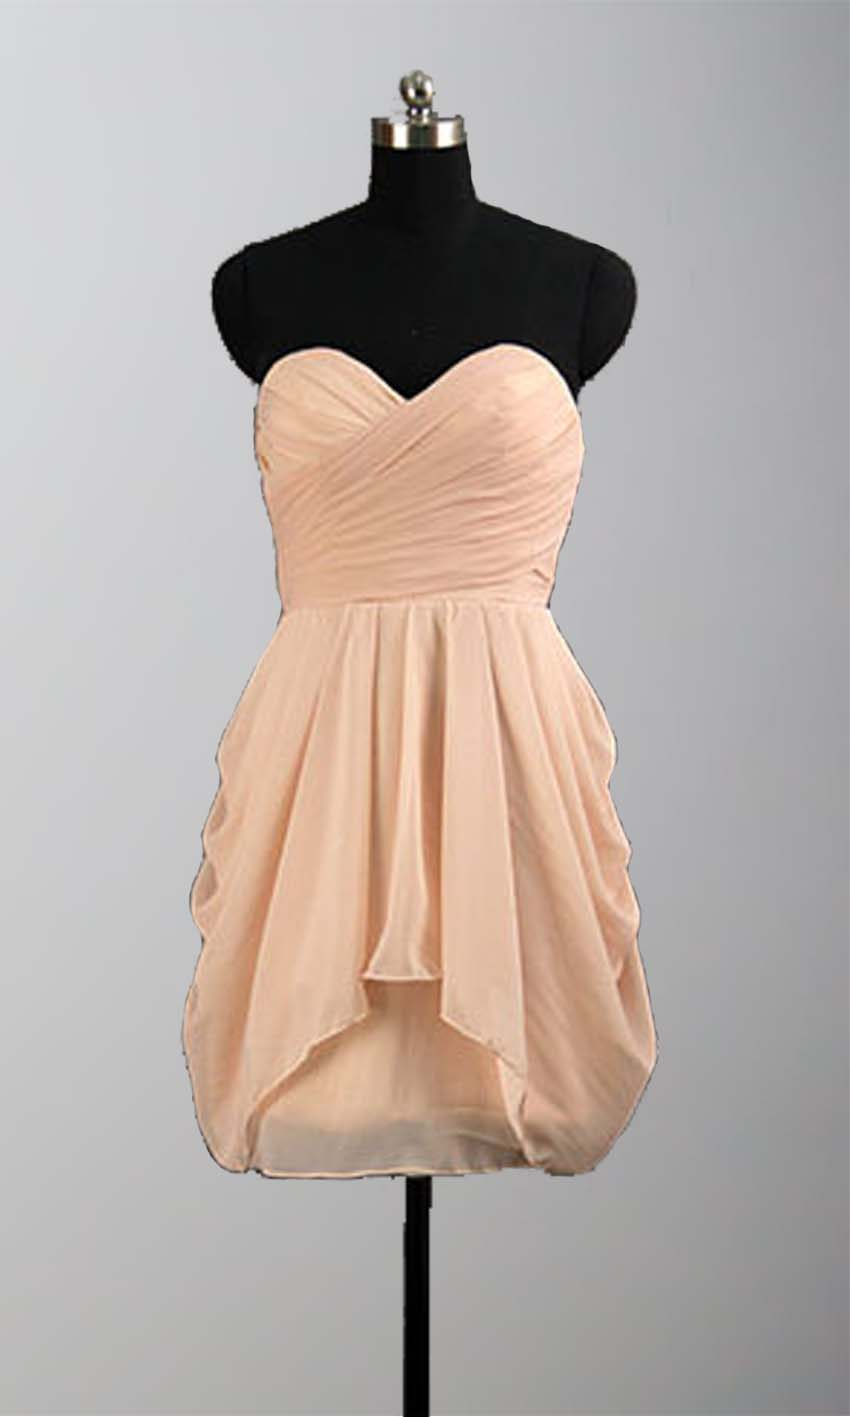 Peach Ruching High Low Mini Bridesmaid Dresses KSP295 [KSP295] - £78.00 : Cheap Prom Dresses Uk, Bridesmaid Dresses, 2014 Prom & Evening Dresses, Look for cheap elegant prom dresses 2014, cocktail gowns, or dresses for special occasions? kissprom.co.uk offers various bridesmaid dresses, evening dress, free shipping to UK etc.